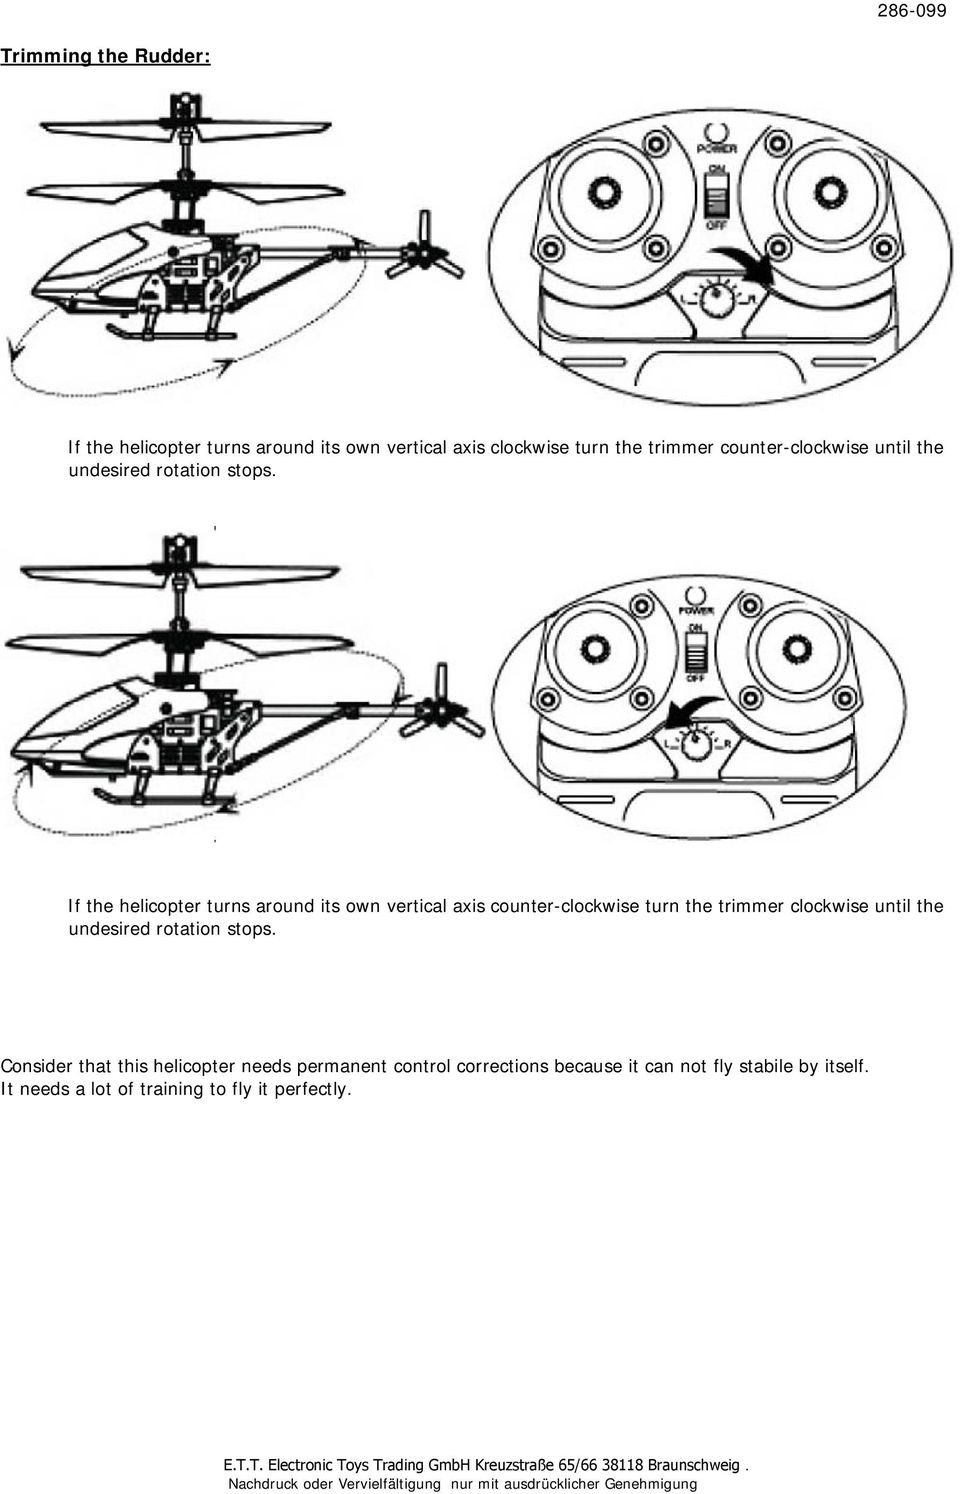 If the helicopter turns around its own vertical axis counter-clockwise turn the trimmer clockwise until the